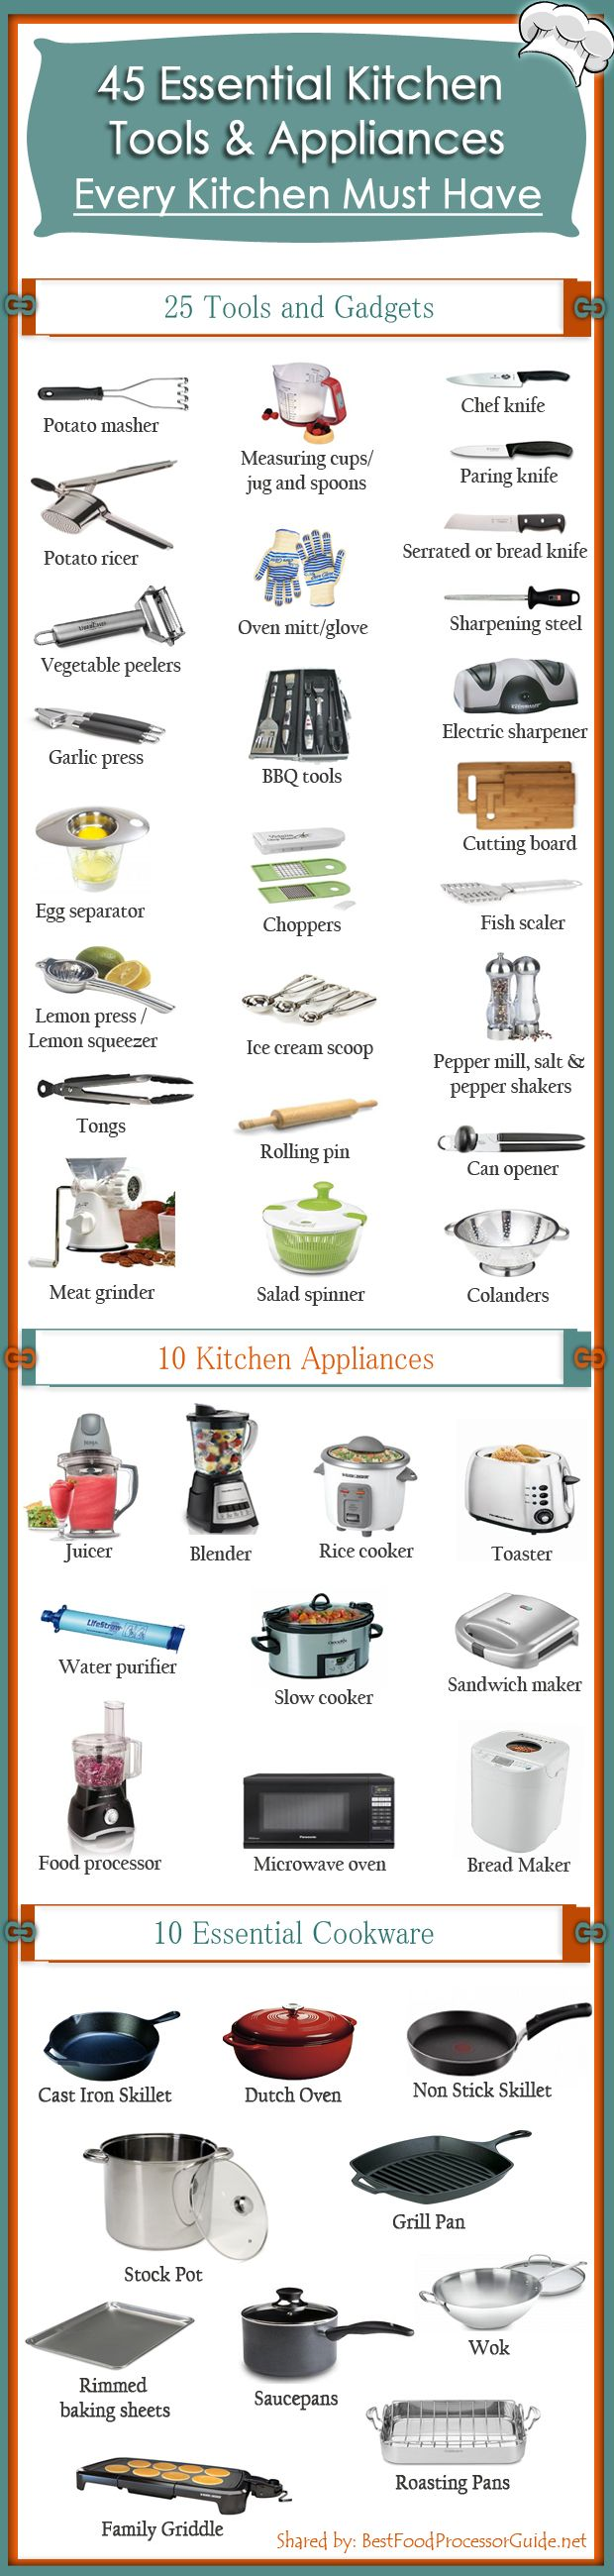 45 Essential Kitchen Tools and Appliances – Every Kitchen Must Have ...